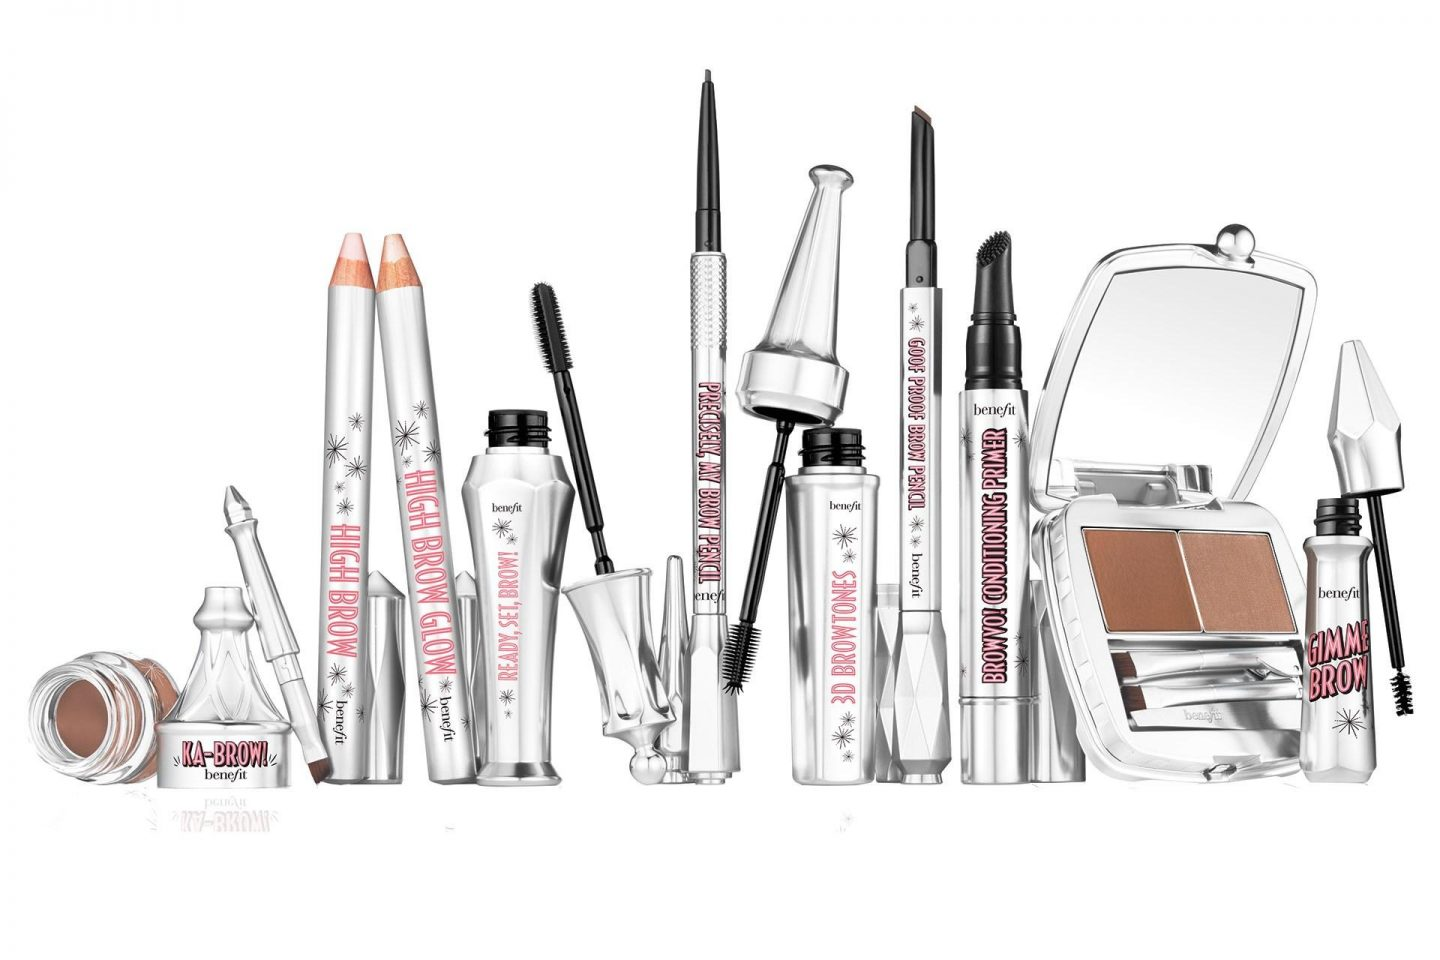 New Benefit Brow Products